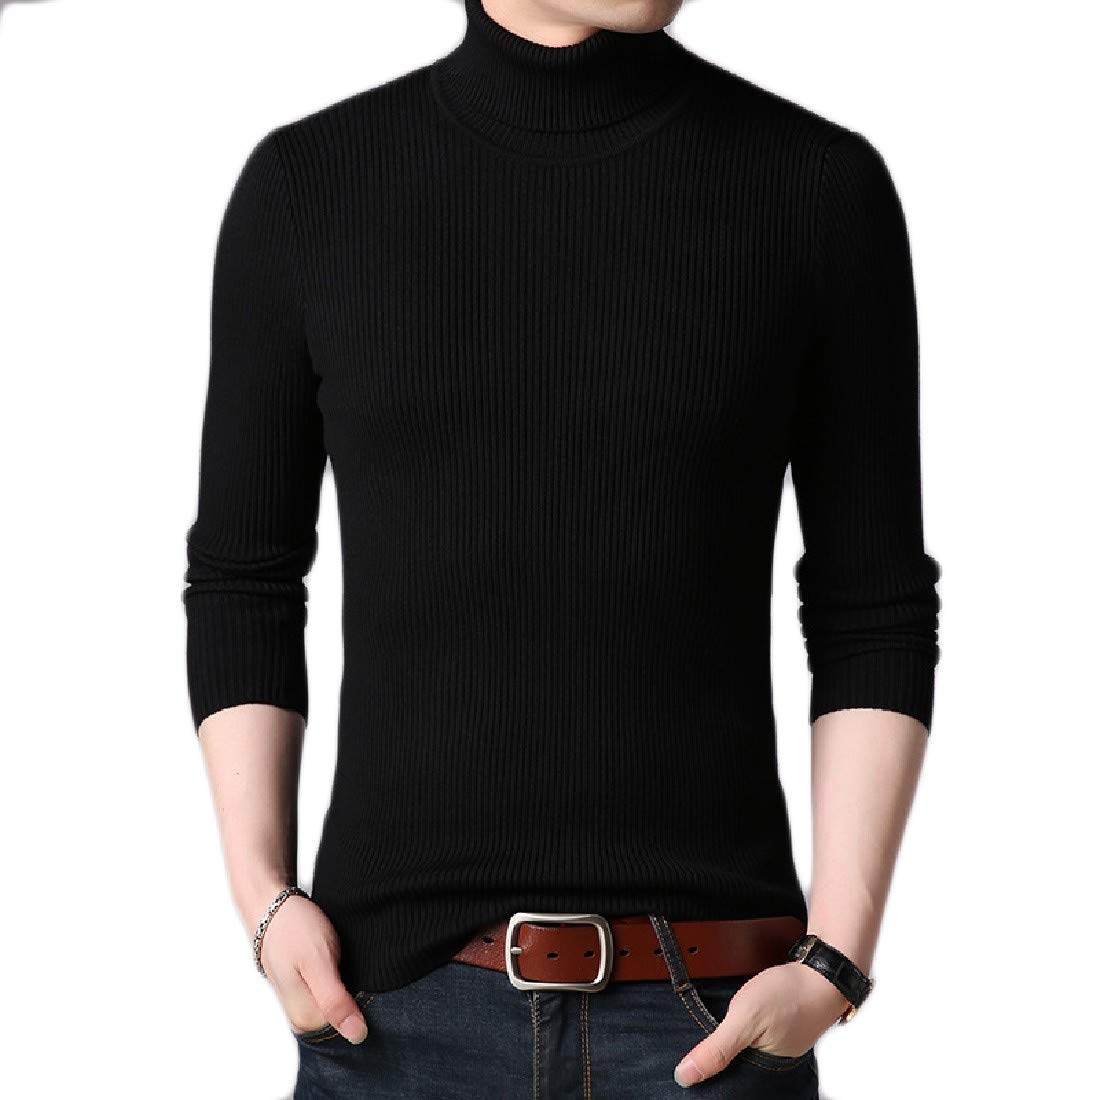 AngelSpace Mens Turtleneck Skinny Knitwear Warm Thick Pullover Sweater